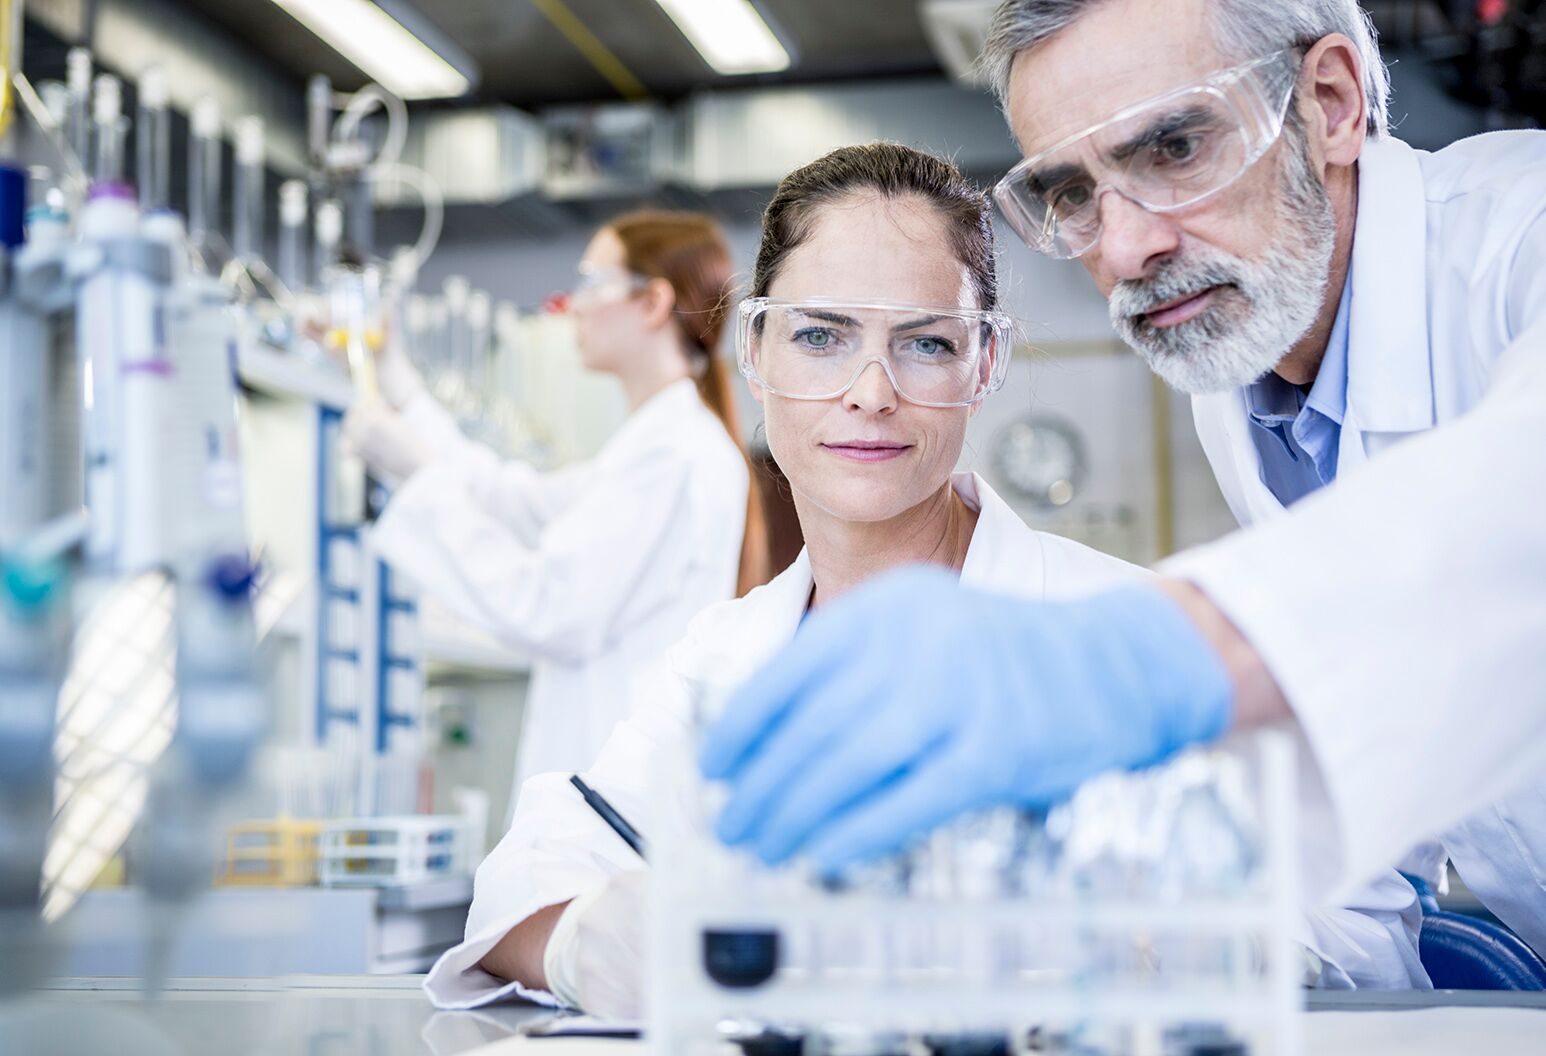 Two scientists with lab coats and safety glasses reviewing a chemical solution.